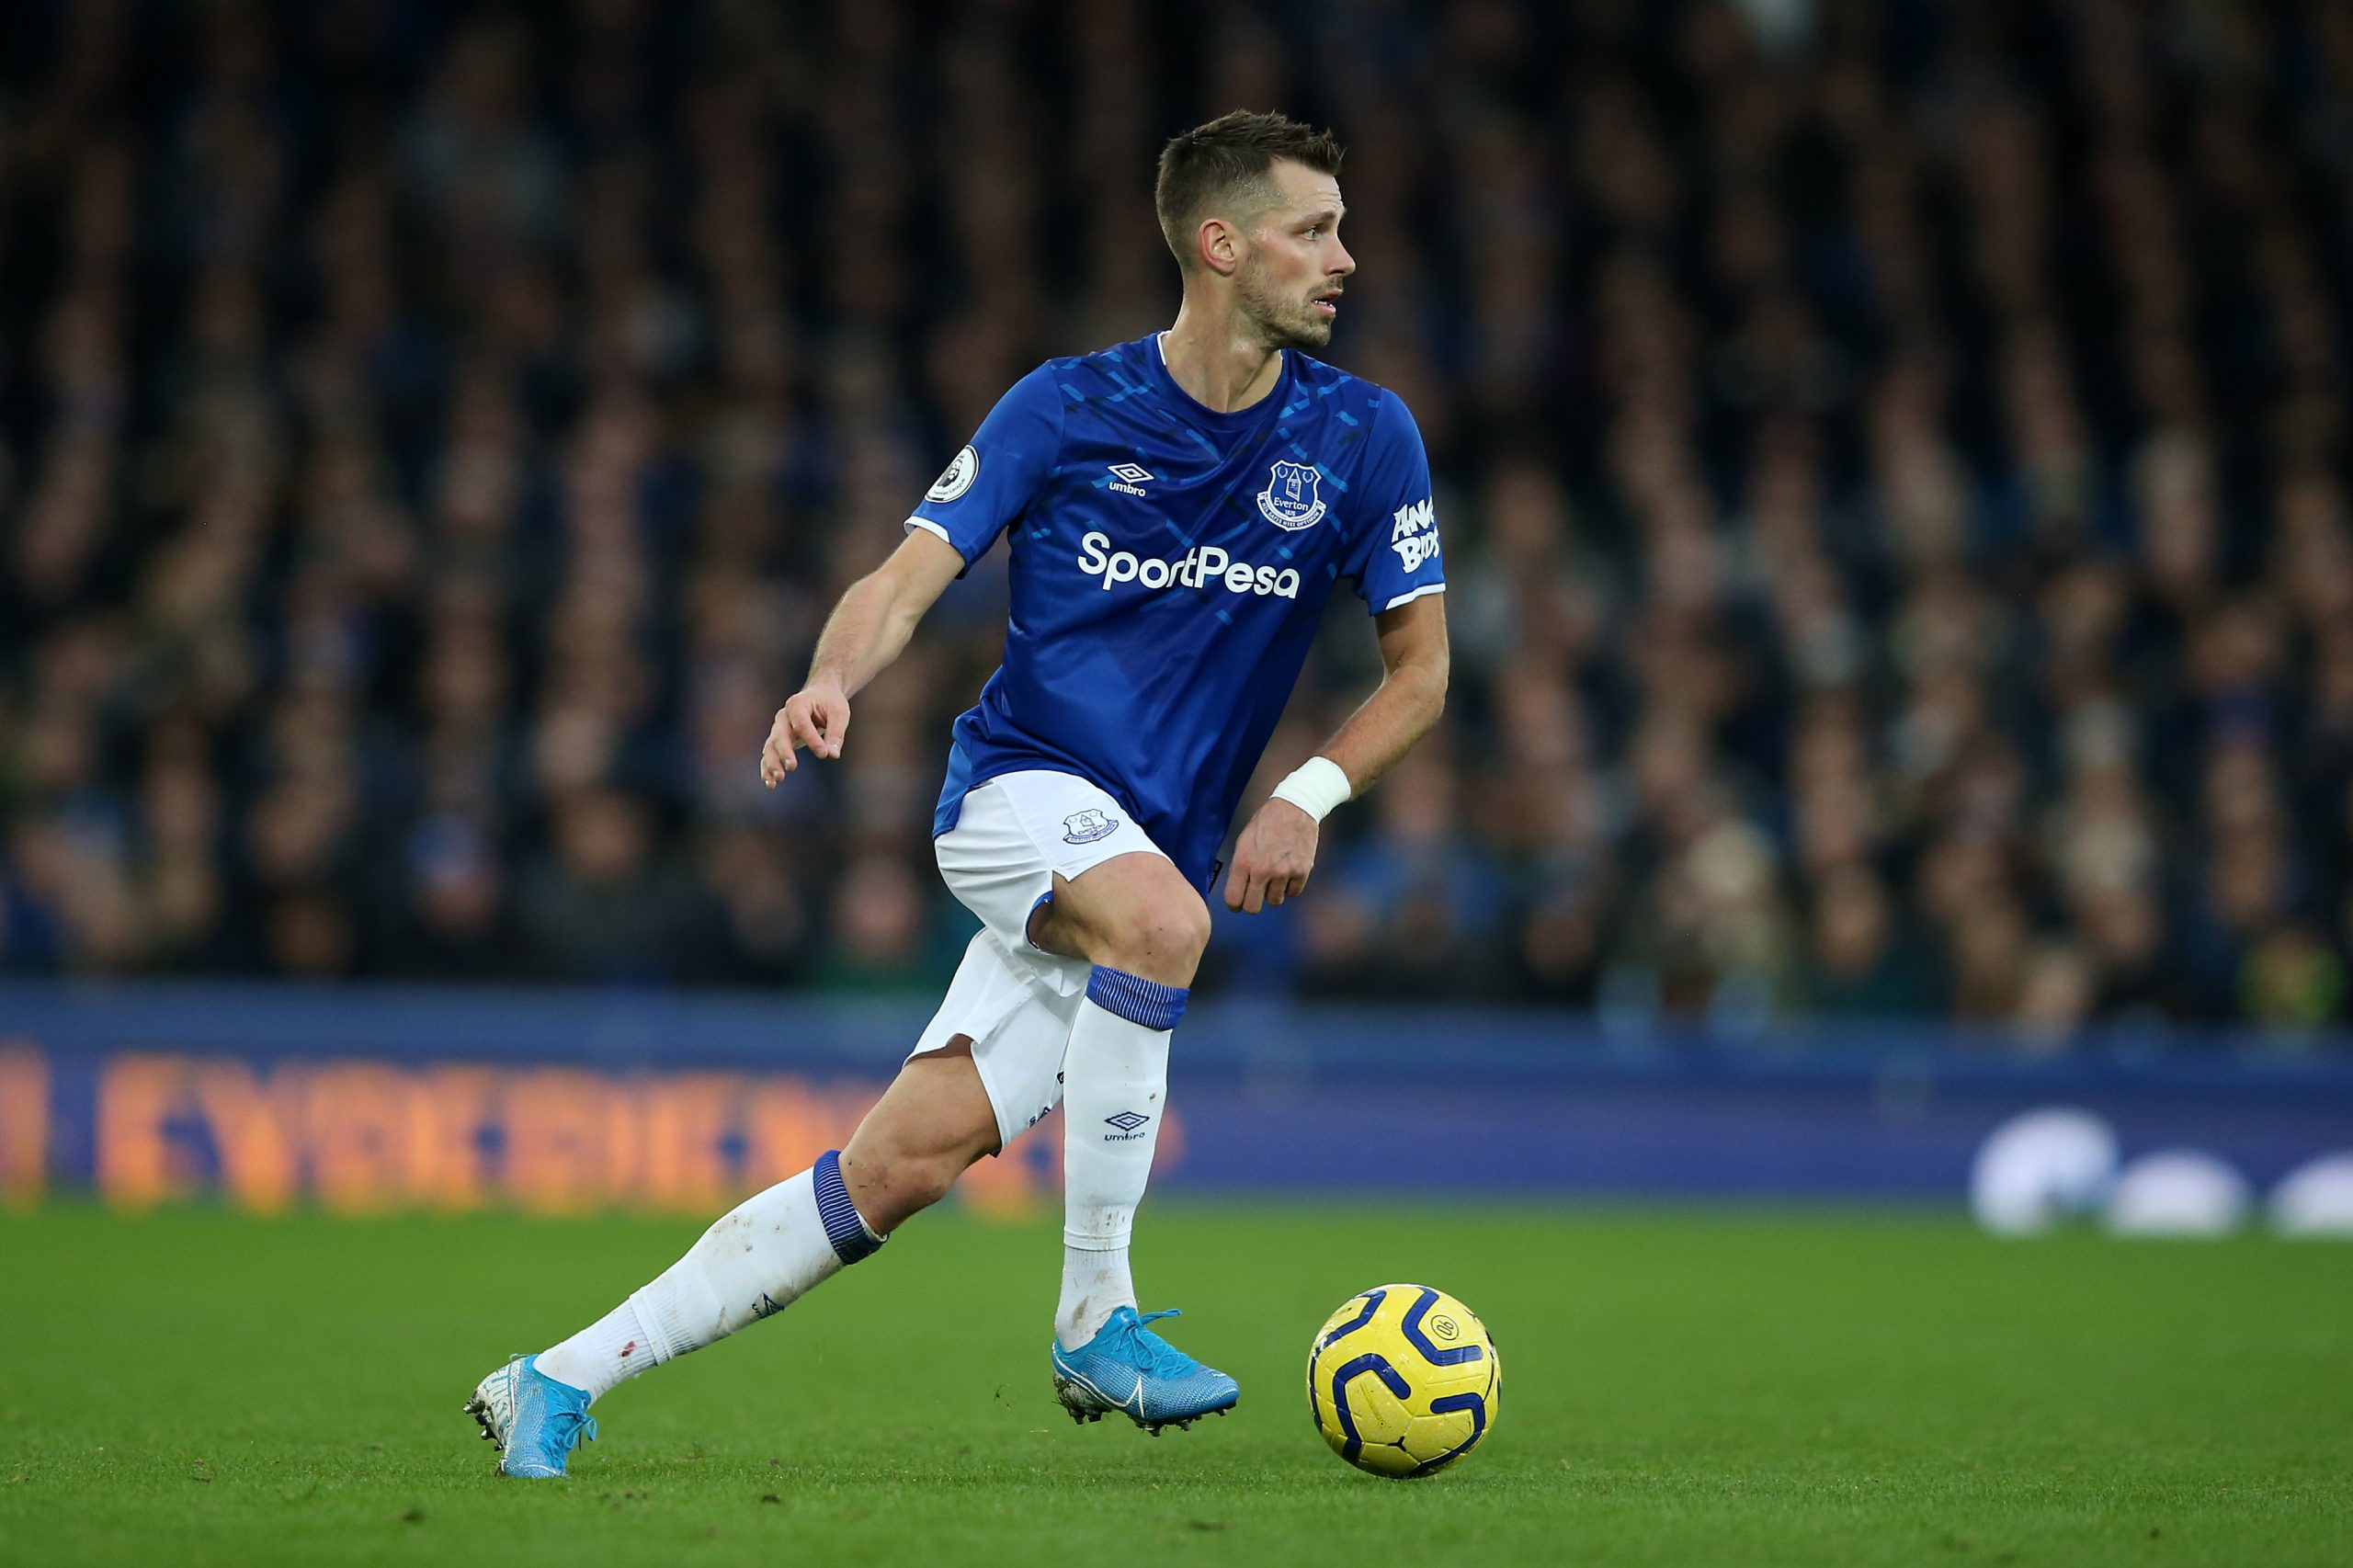 Morgan Schneiderlin played for Everton too during his PL days